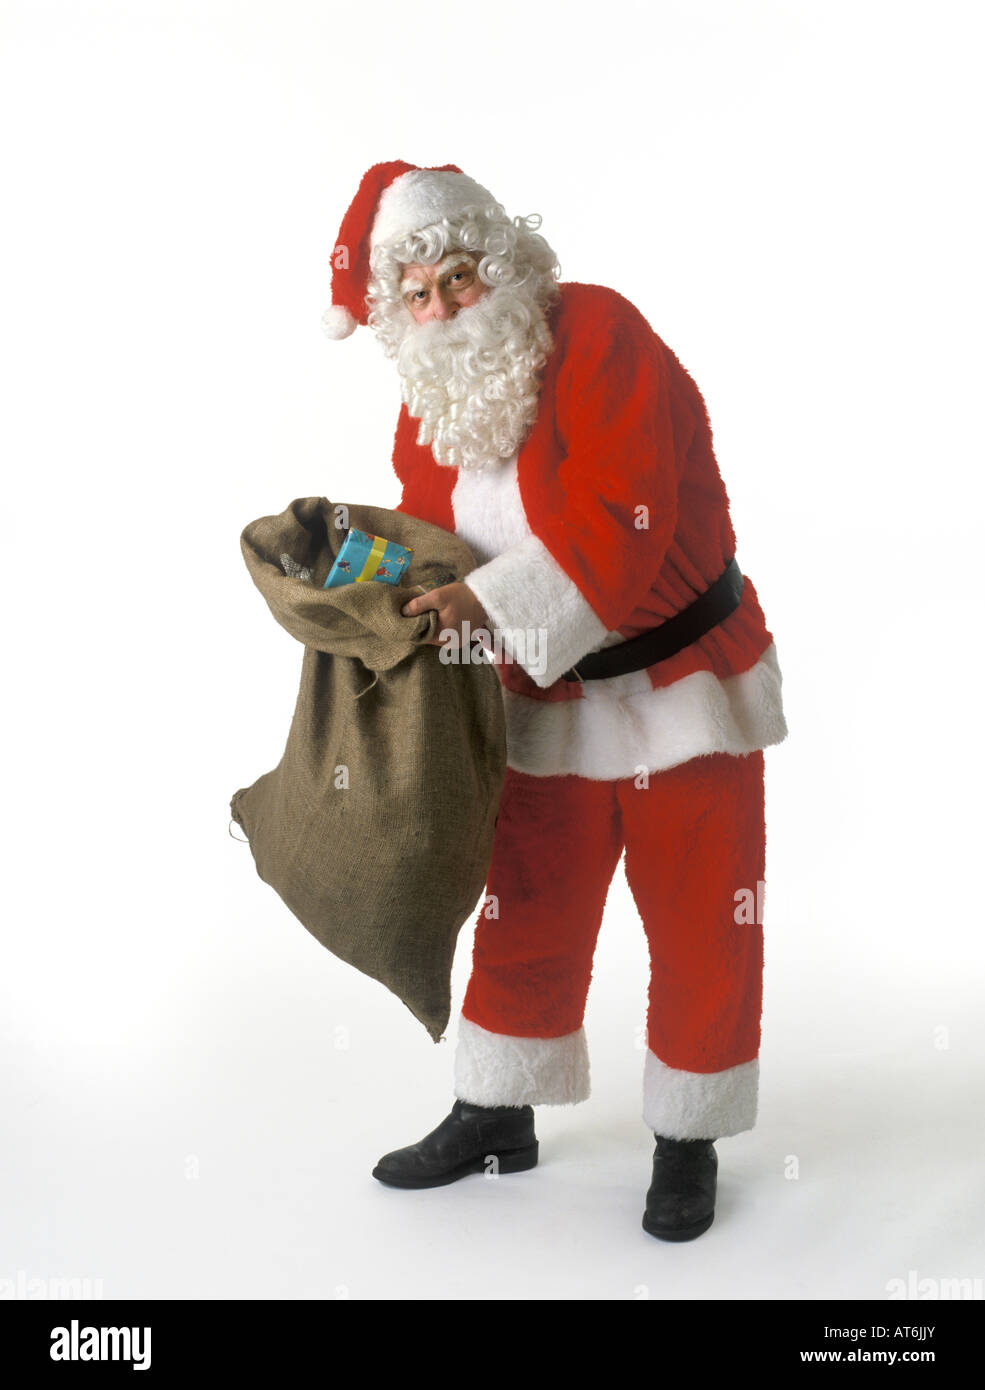 Santa Claus with a sack full of presents - Stock Image